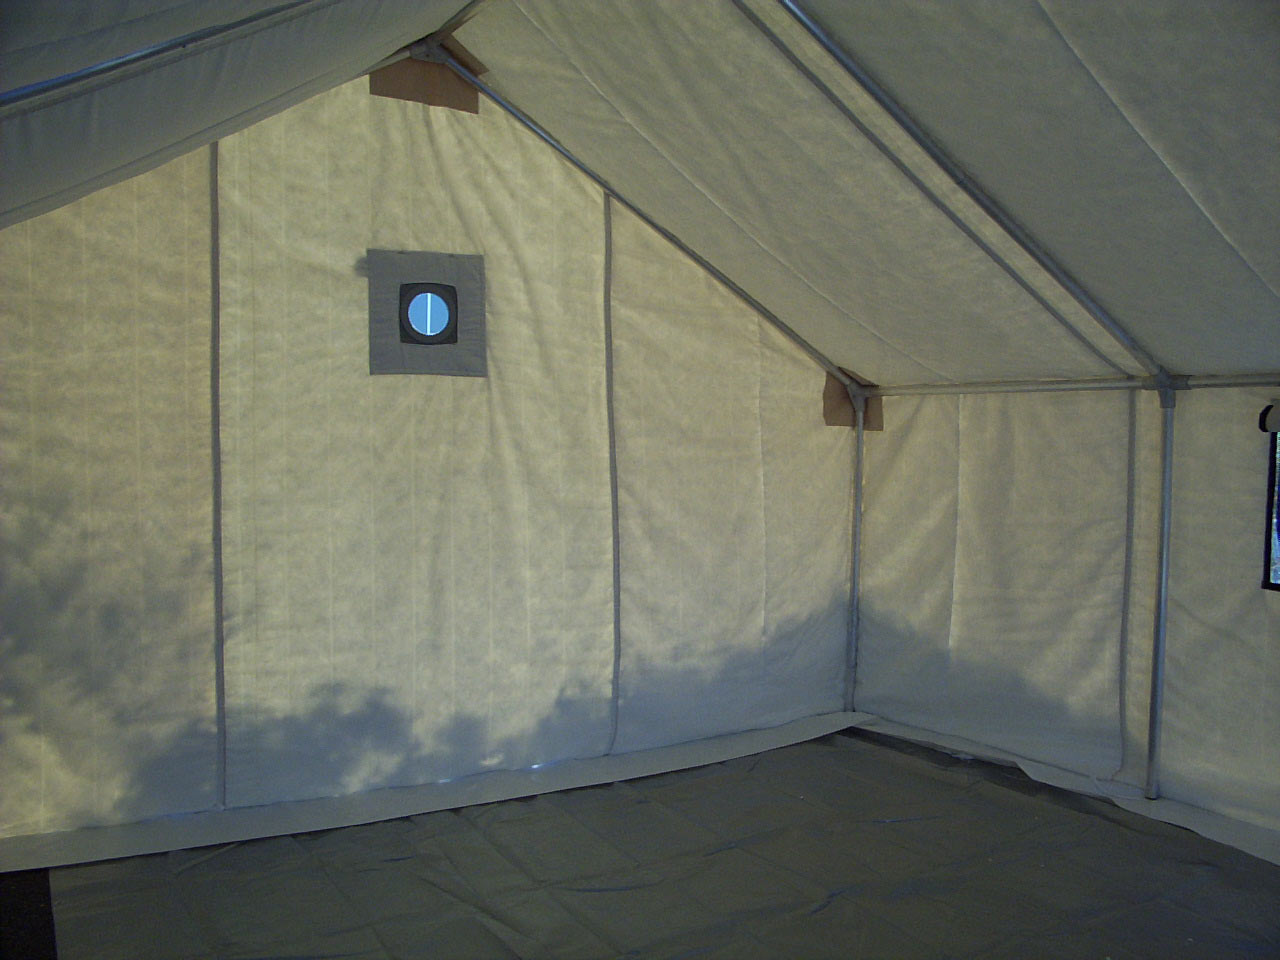 & Outfitter Wall Tents u2013 Exploration Tents and Arctic Camp Supplies